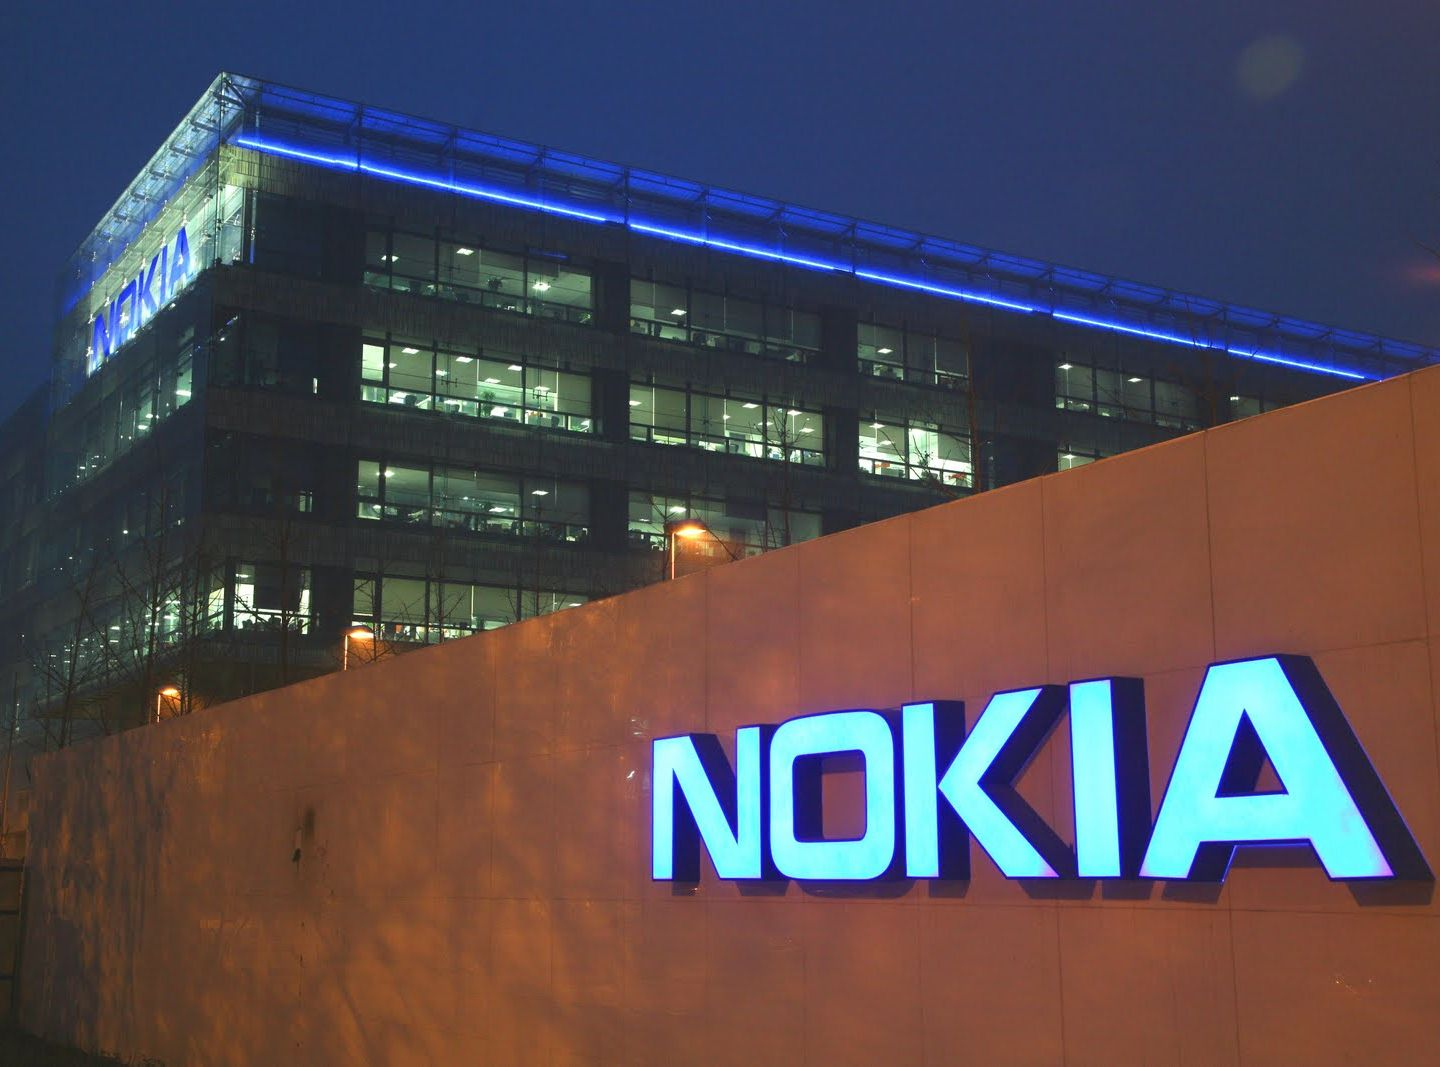 Nokia To Release New Phones And Tablets In Q4 2016 Finnish Company Making A Comeback